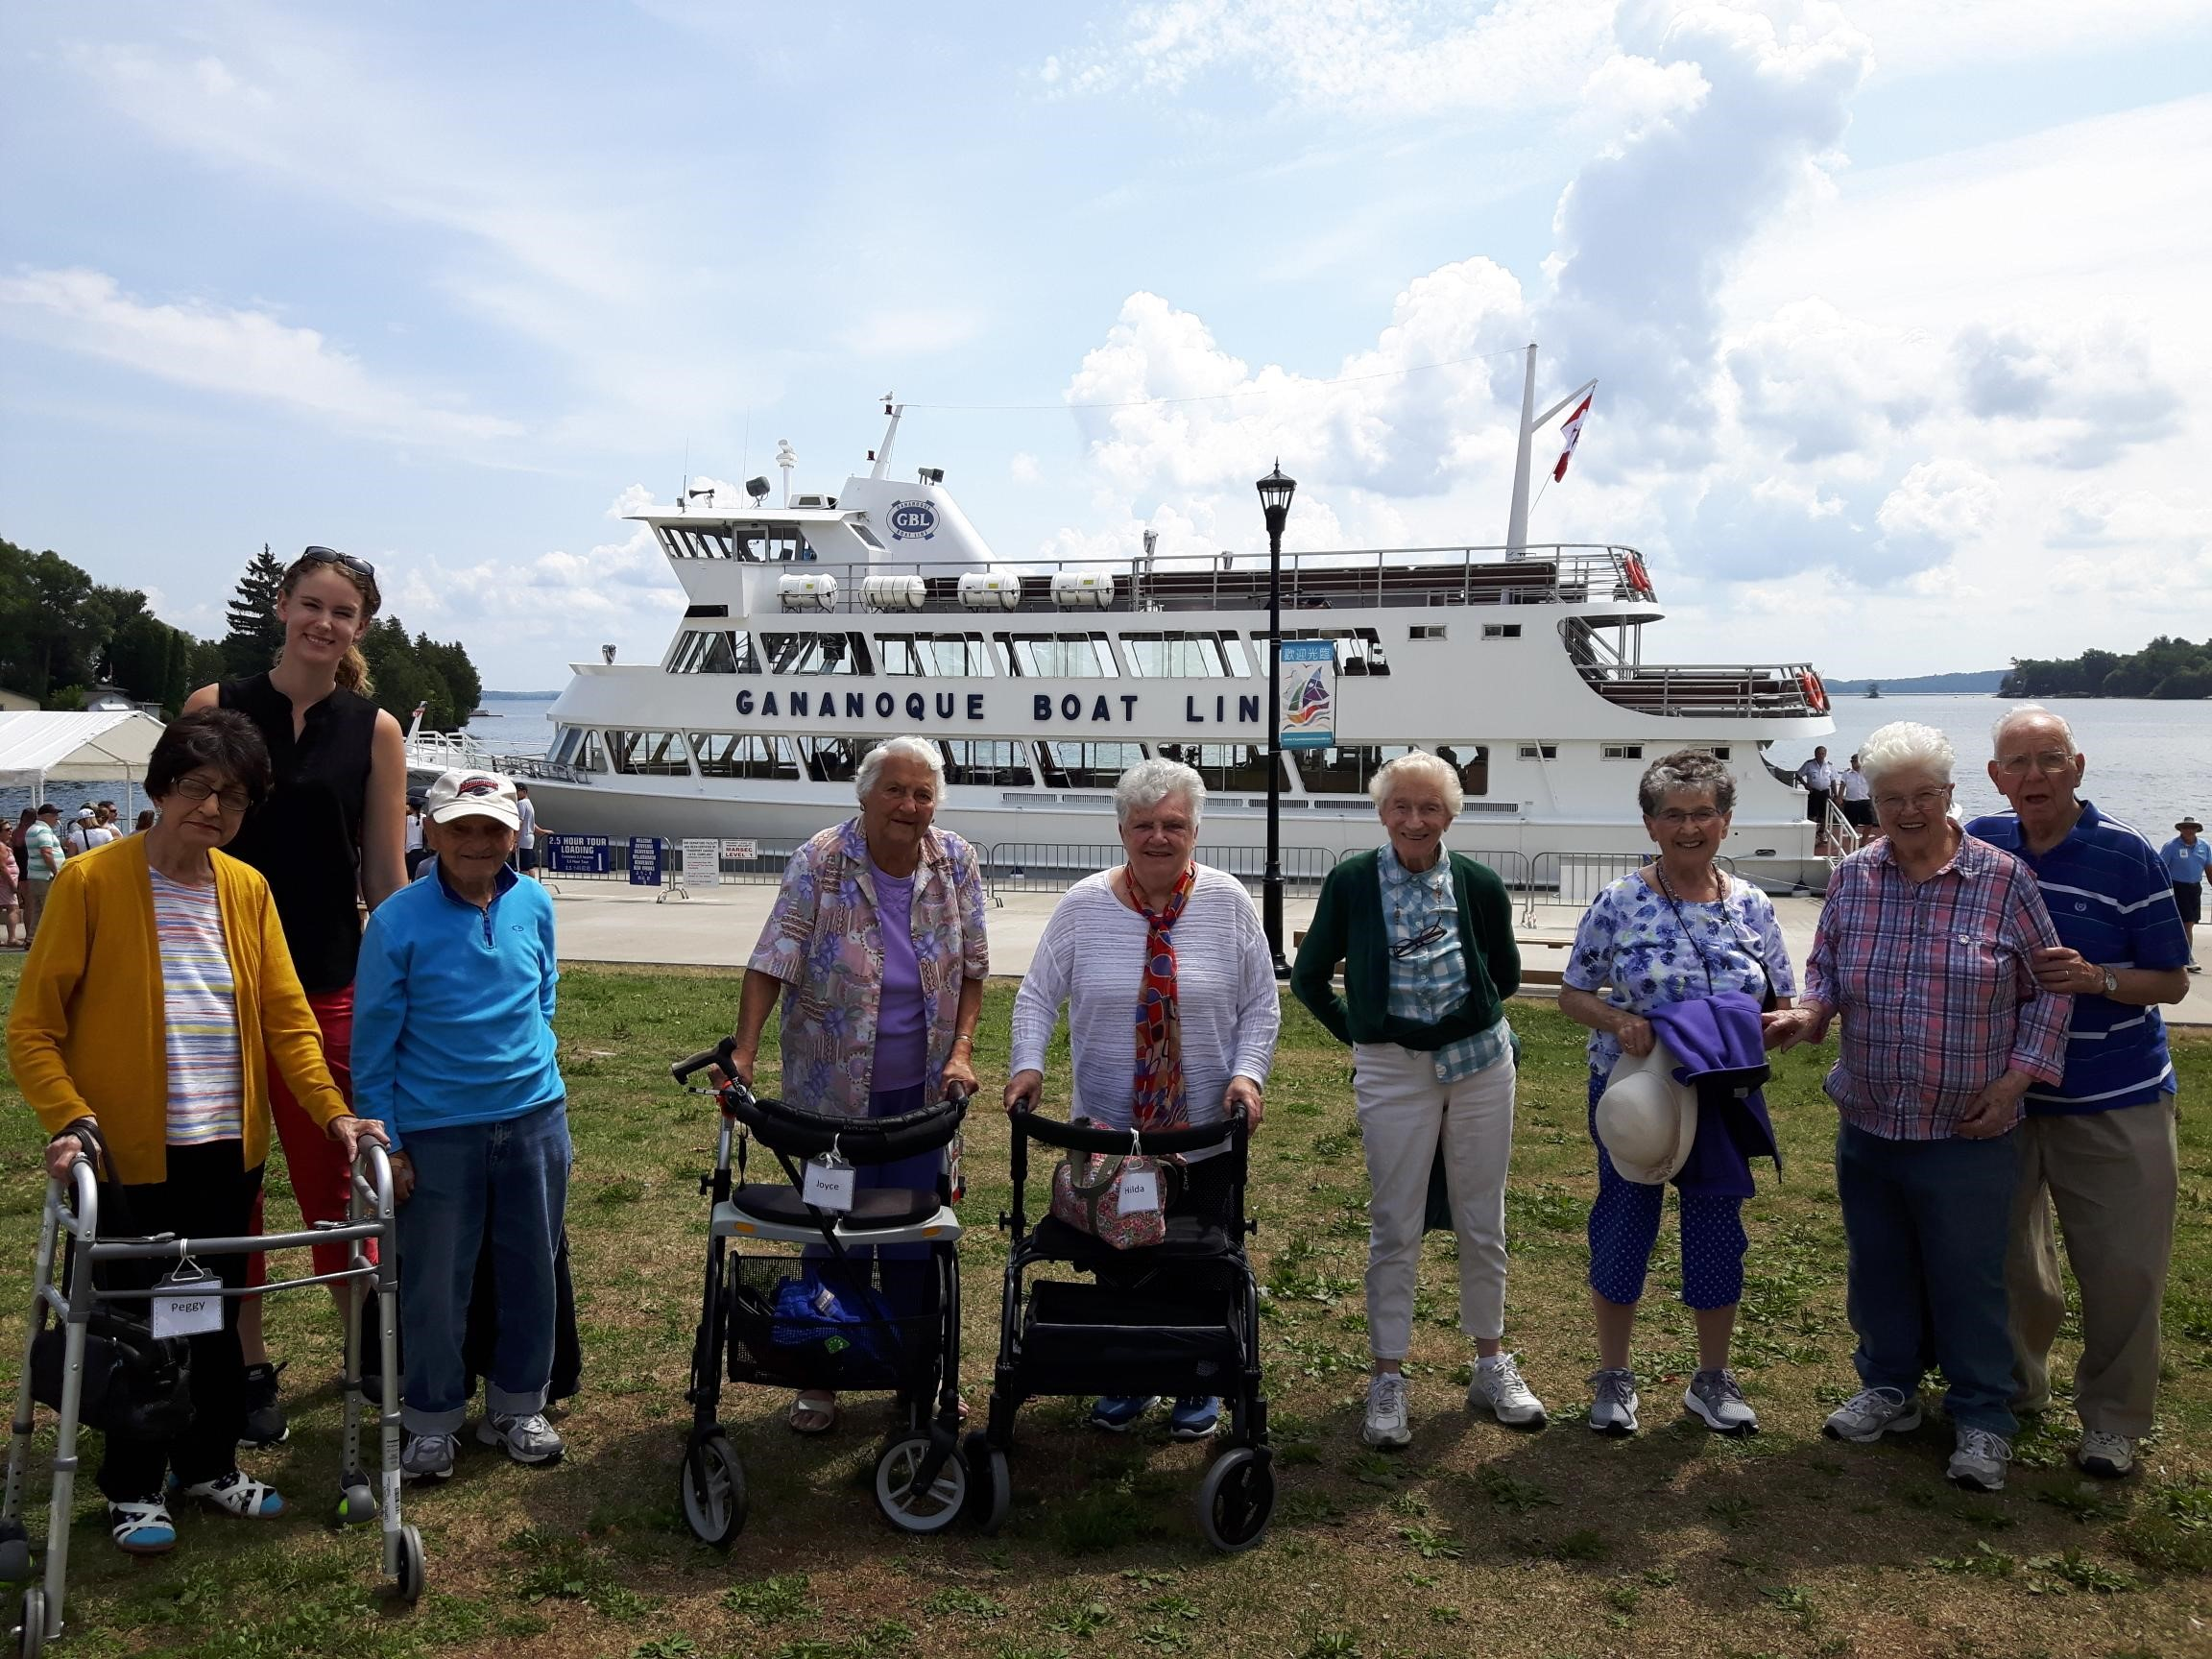 A group of seniors enjoying an outing to the Gananoque Boat Line.